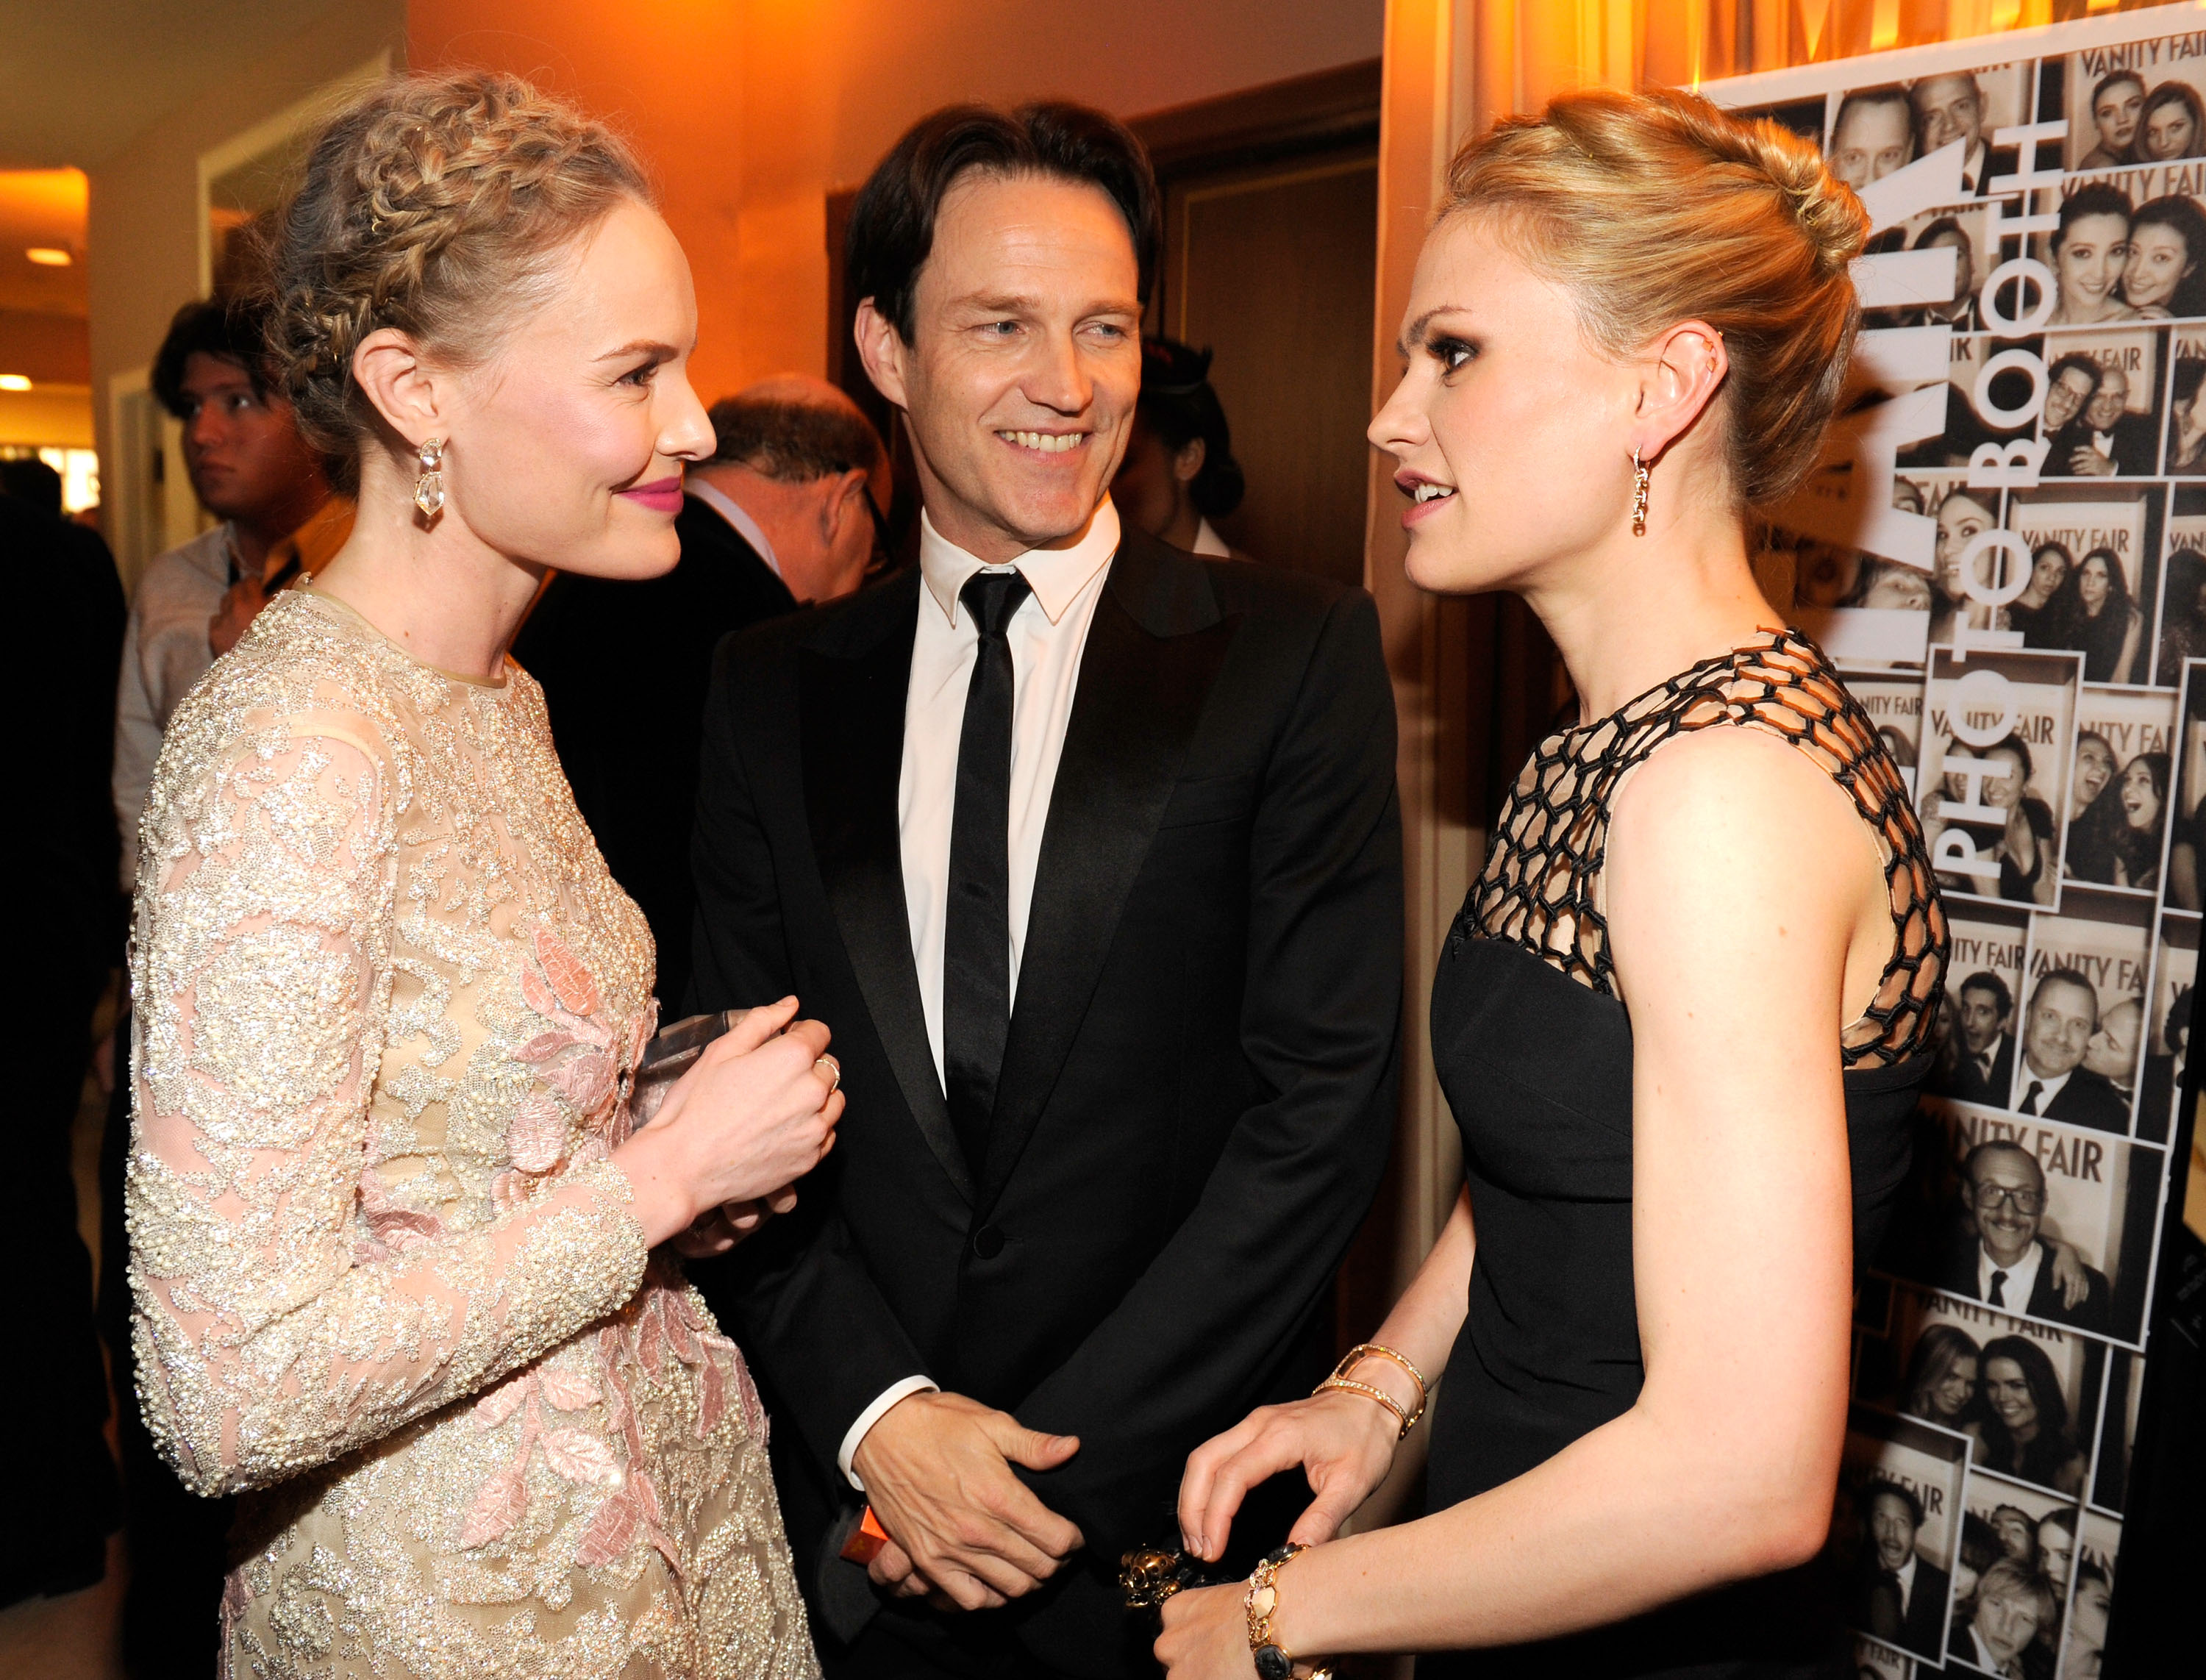 Kate Bosworth chatted with Anna Paquin and Stephen Moyer at Vanity Fair's Oscar afterparty.